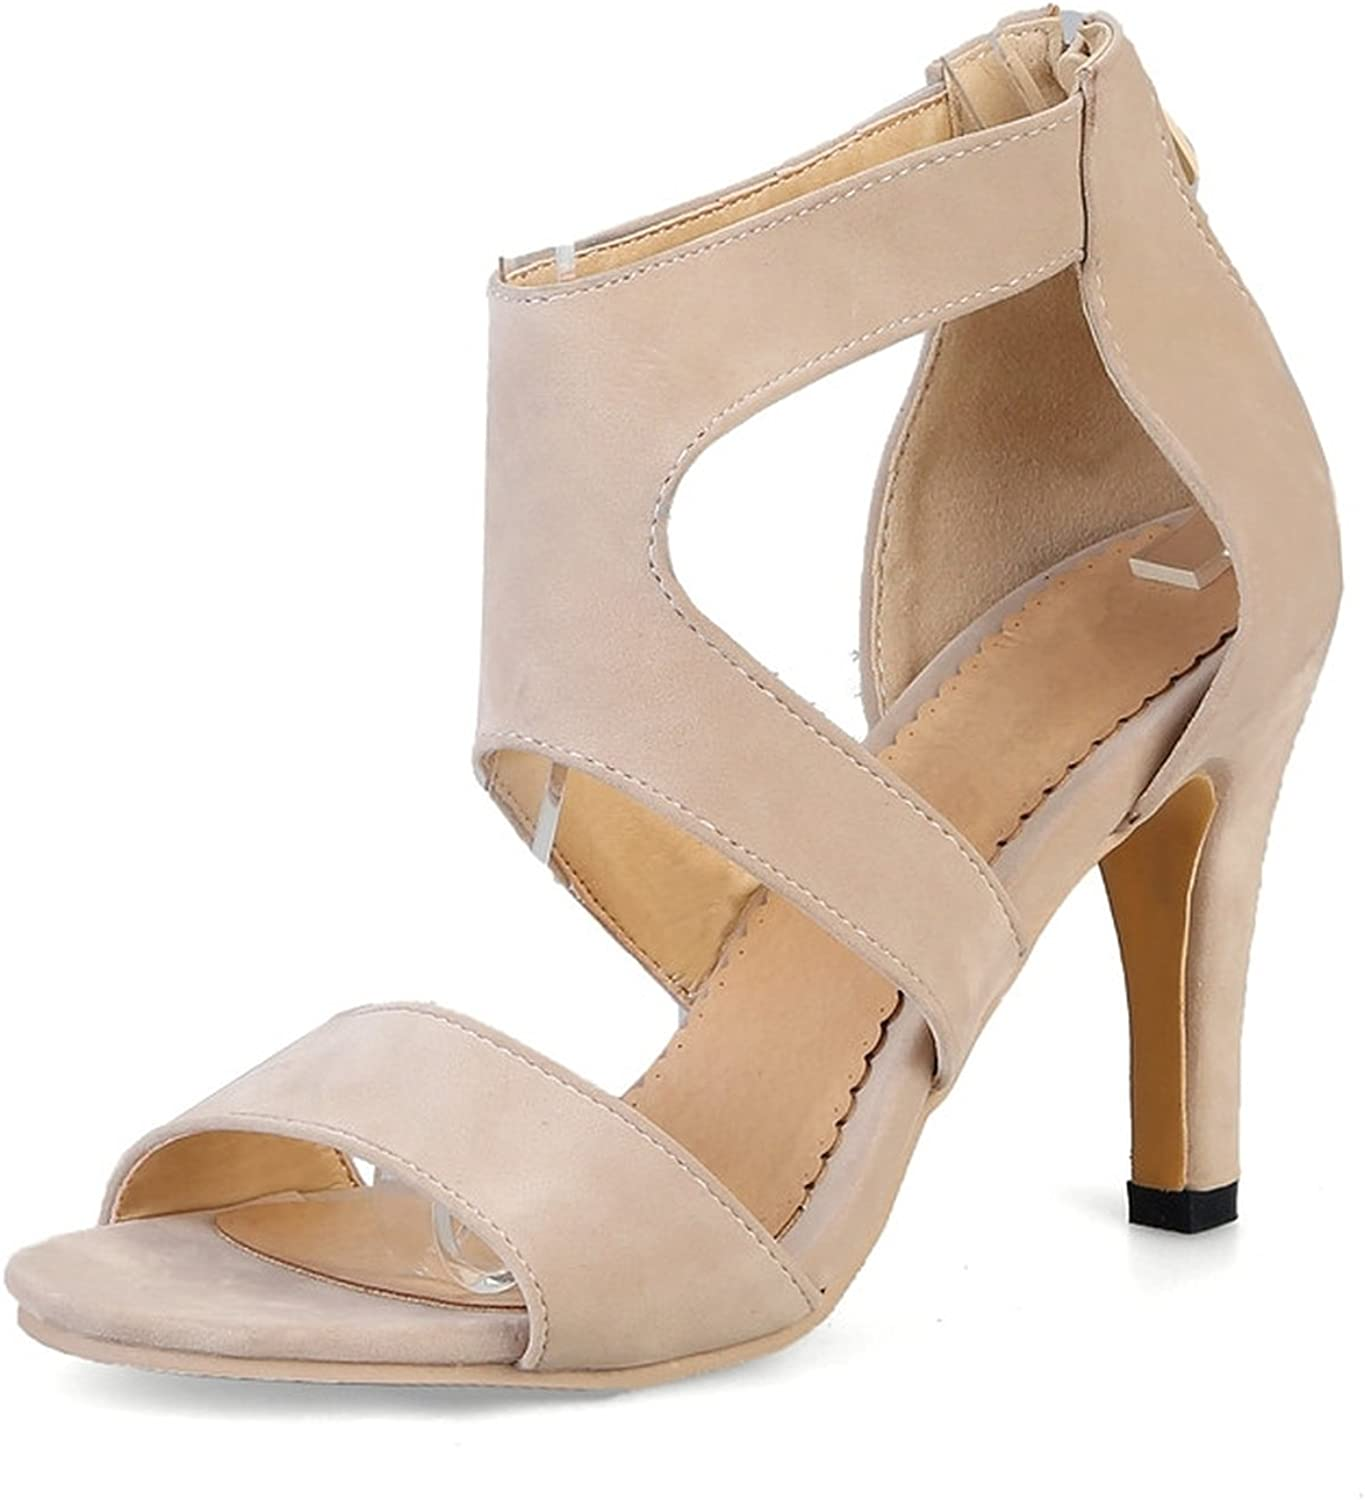 Nerefy Big Size 34-43 Thin High Heels Woman shoes Gladiator Party Dating Sandals shoes Women Footwear